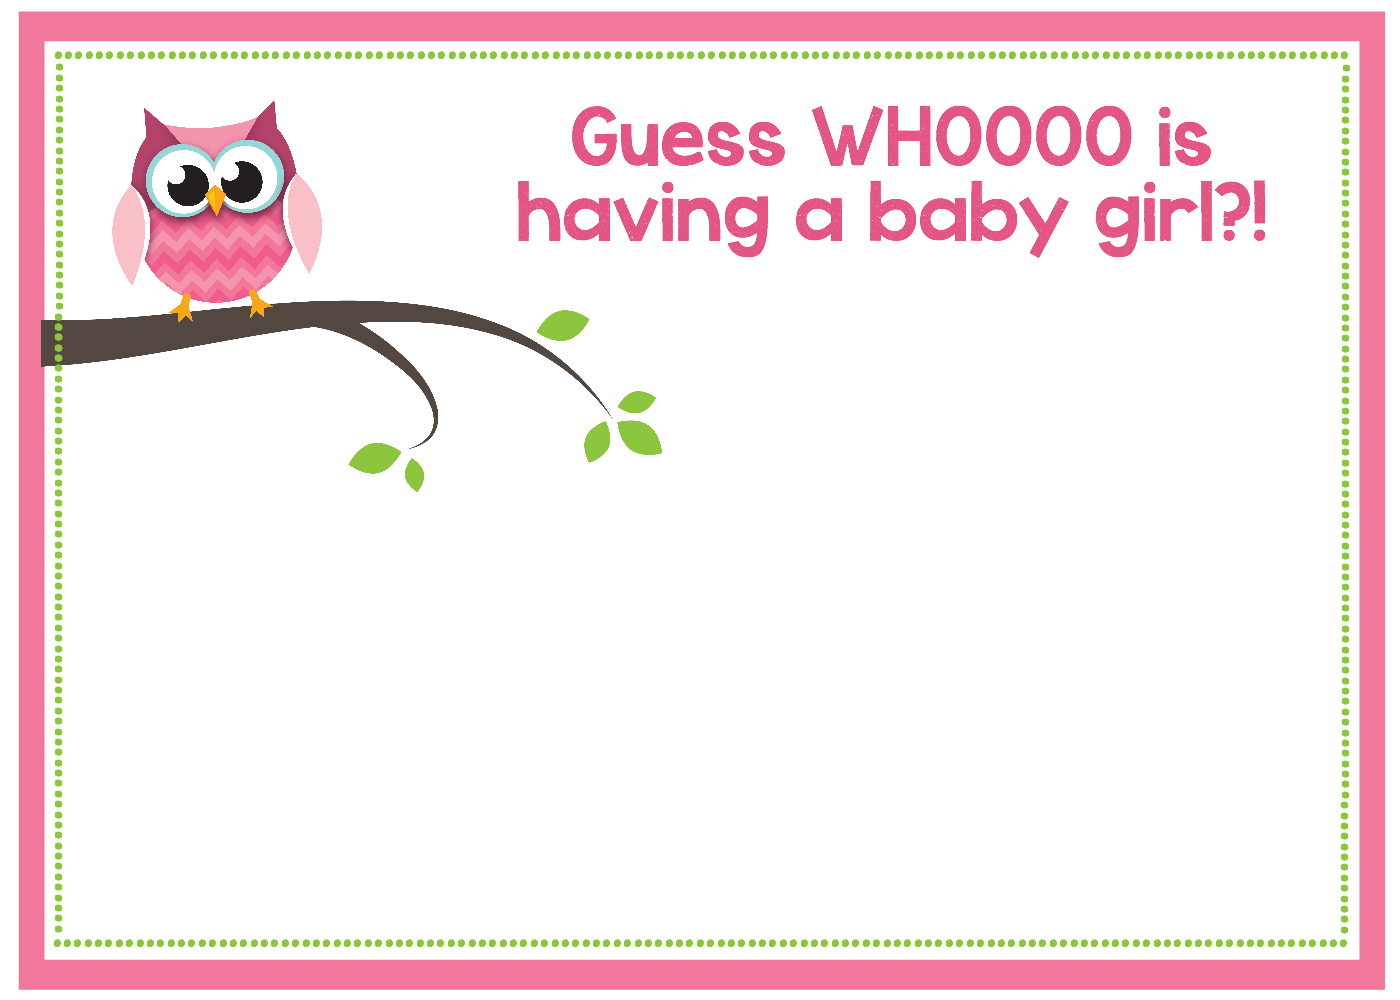 Free Printable Owl Baby Shower Invitations {& Other Printables} - Free Printable Baby Shower Invitations For Girls